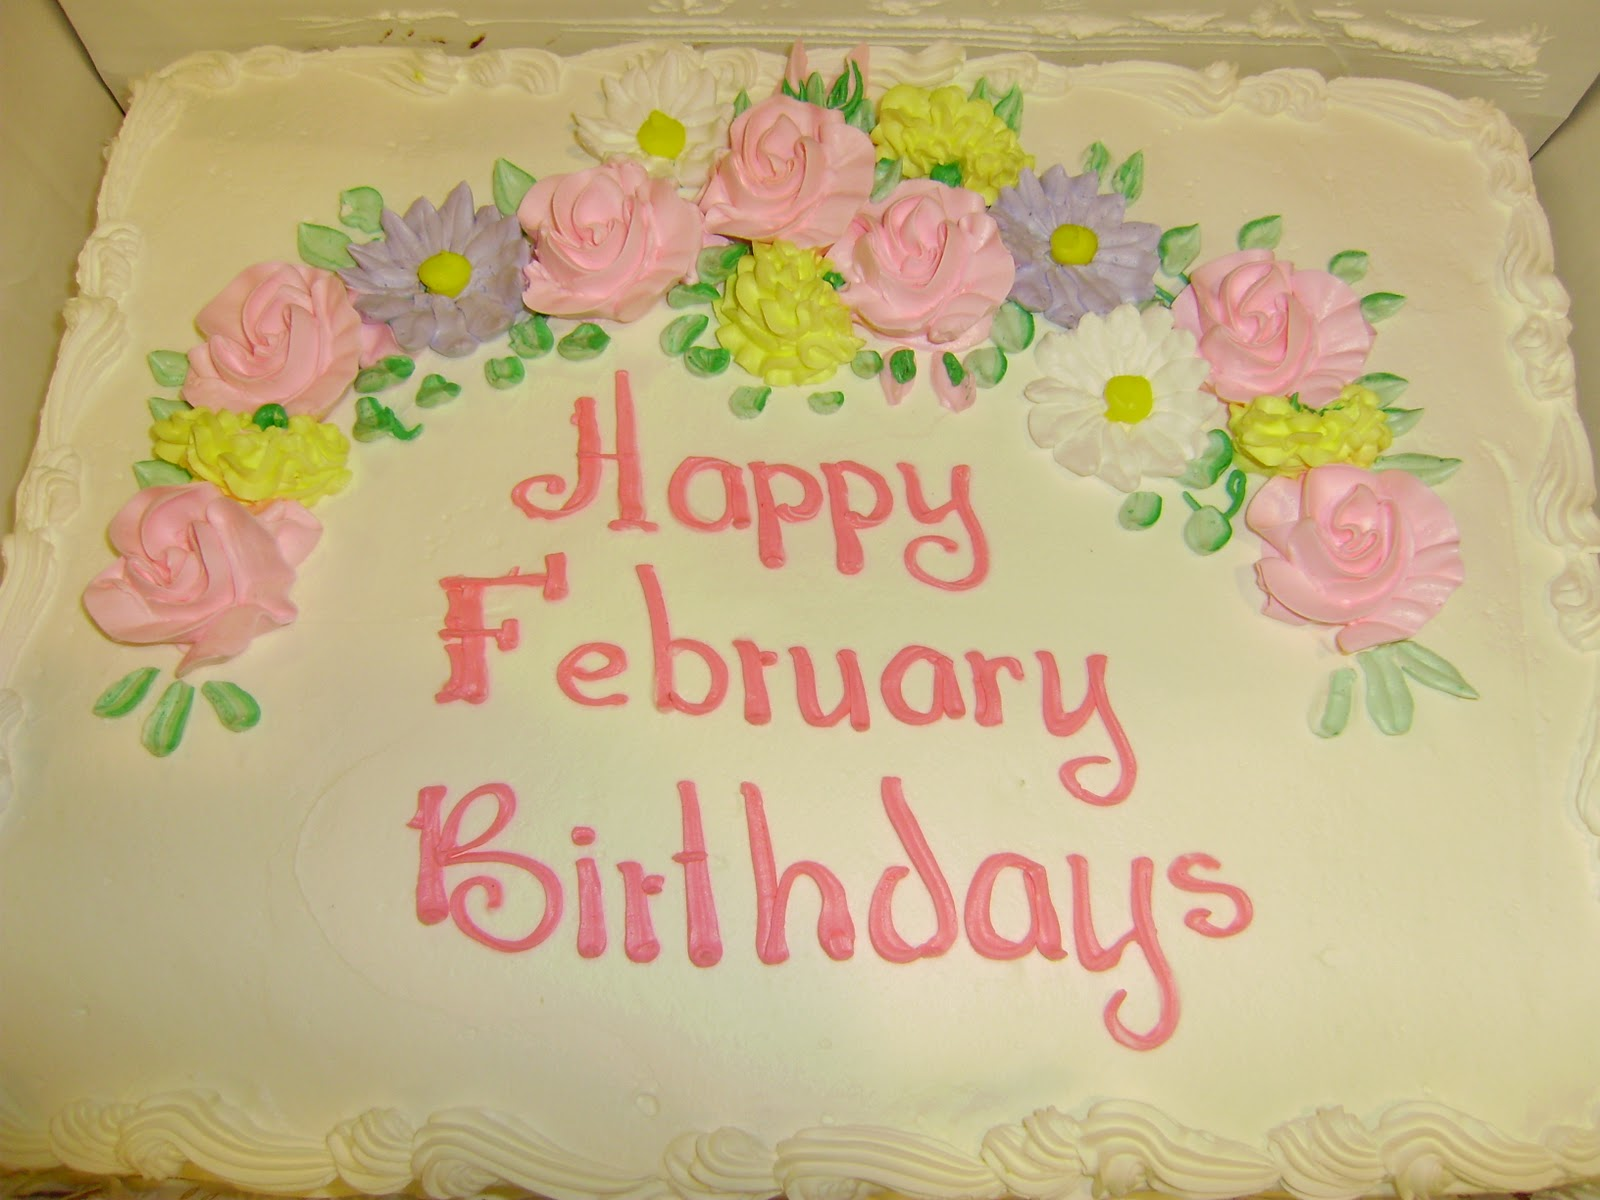 February Birthday Cakes Feb Birthday Cake Images Reverse Search